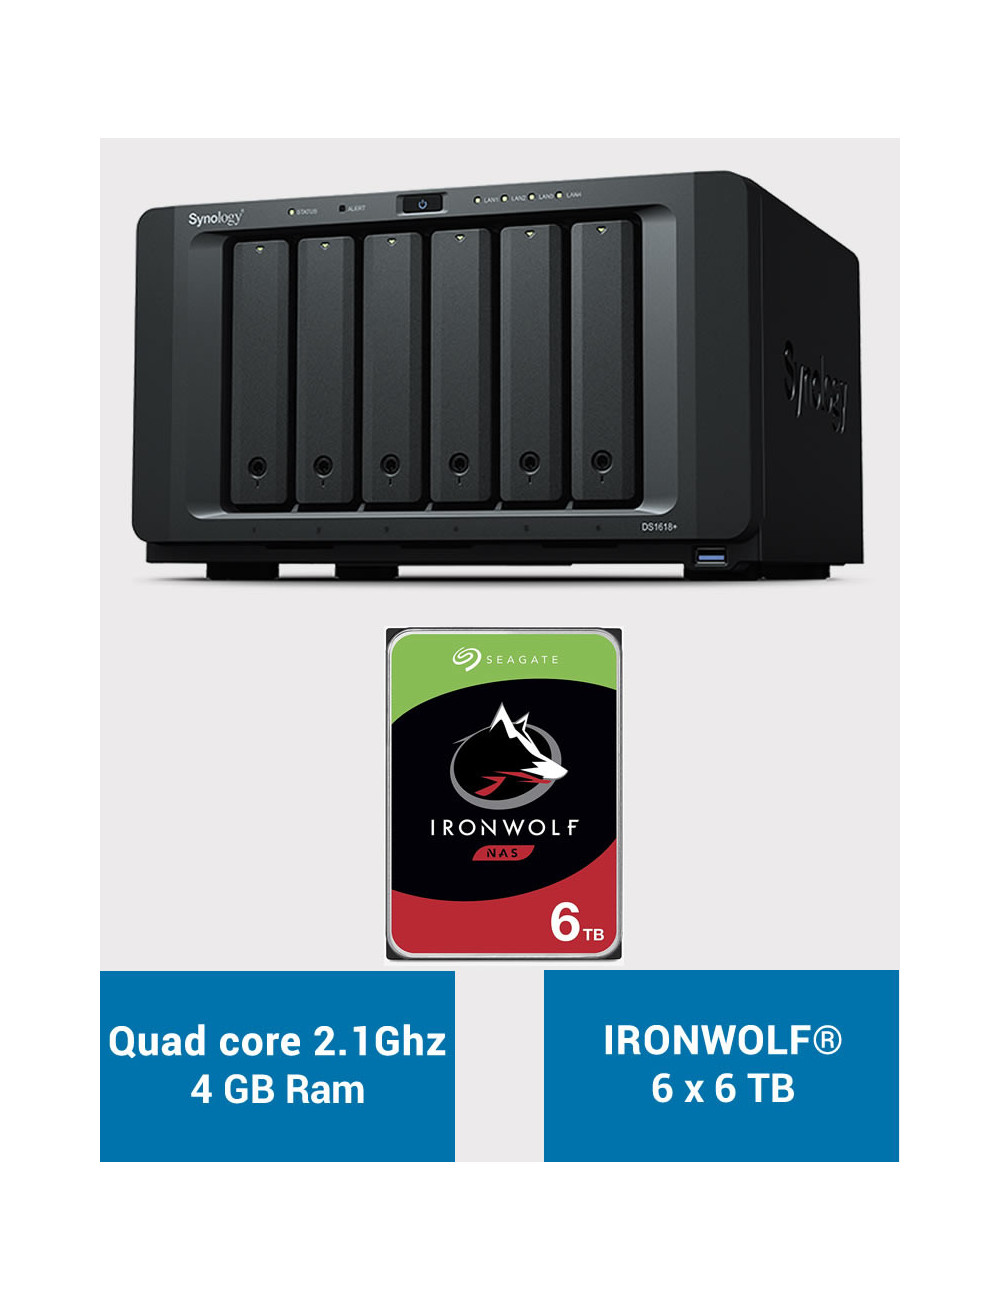 Synology DS1618+ Serveur NAS IRONWOLF 36 To